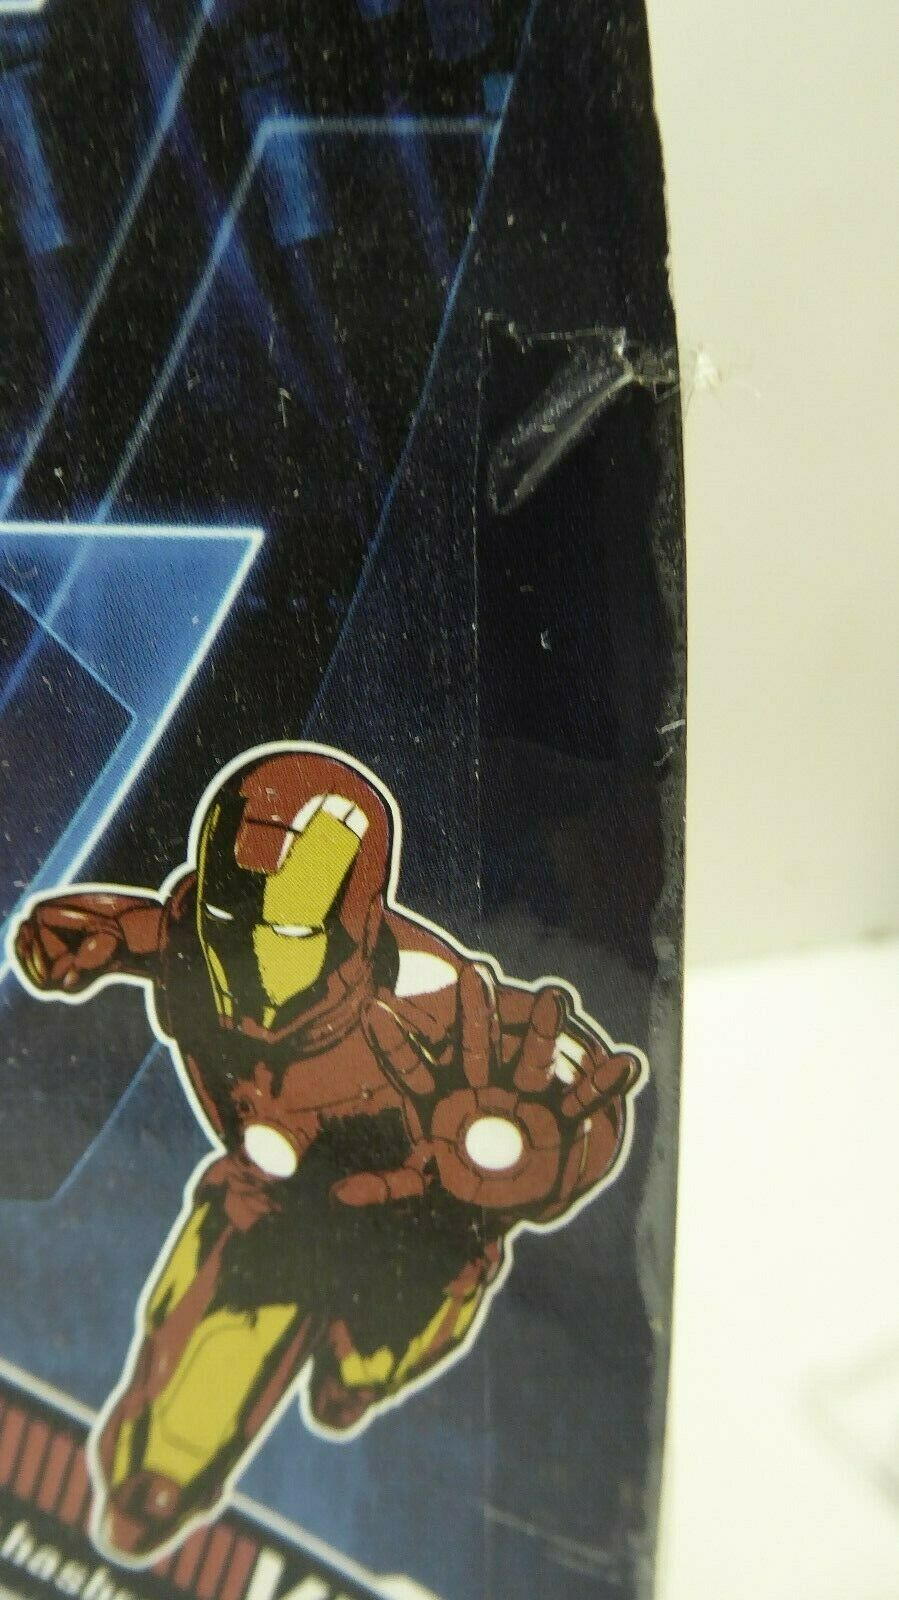 VINTAGE MARVEL IRON MAN MONGER 2008 SERIES FIGURE HASBRO ACTION ACTION ACTION DOLL 52366f